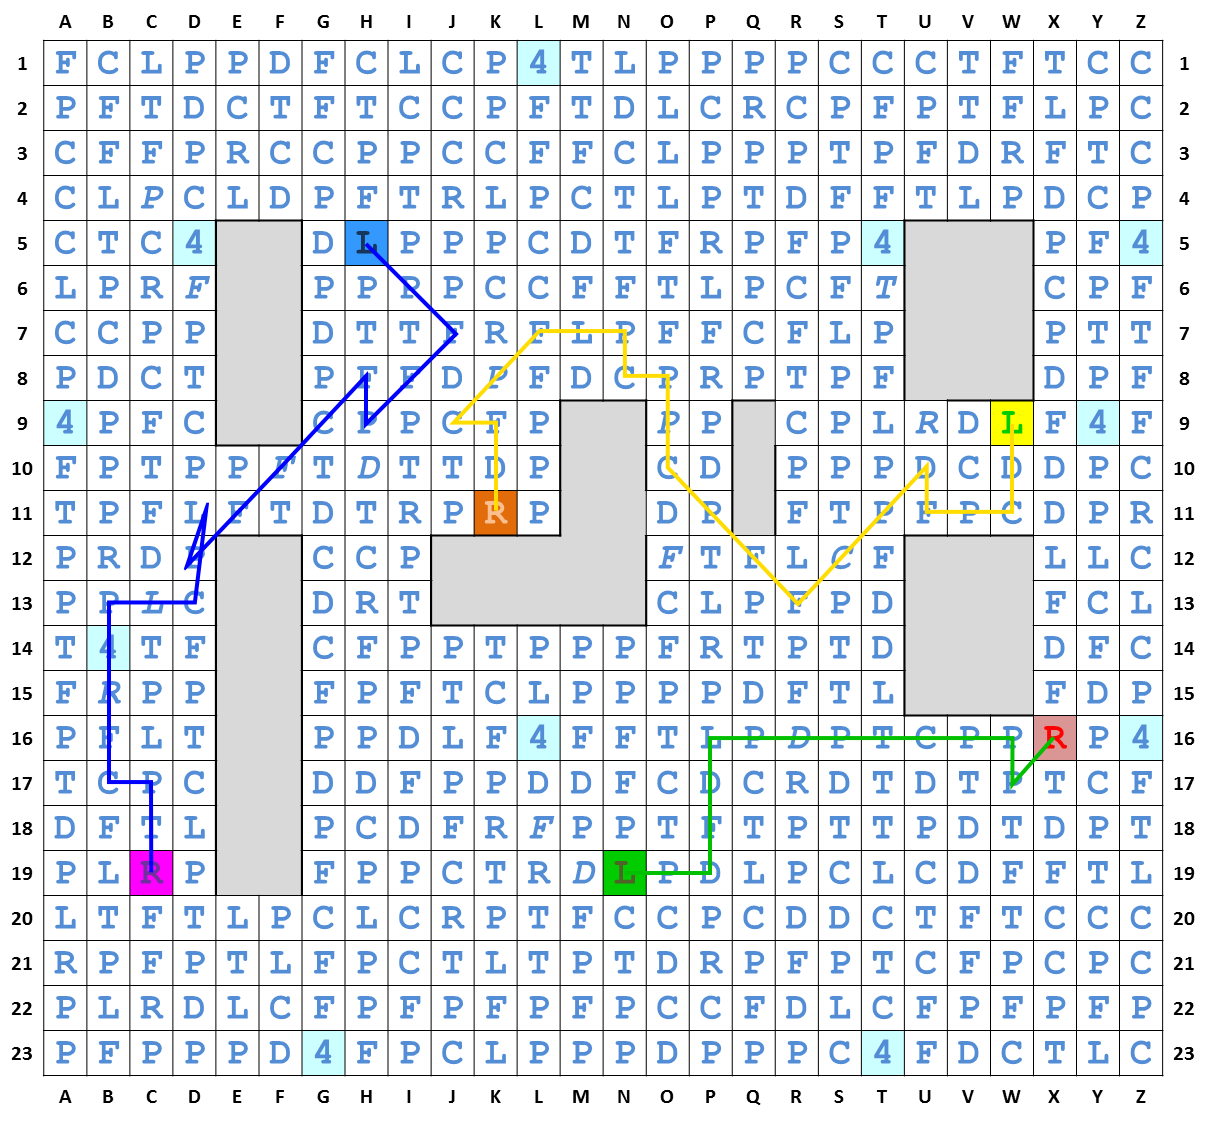 http://www.prise2tete.fr/upload/cogito-BeatChess5.png